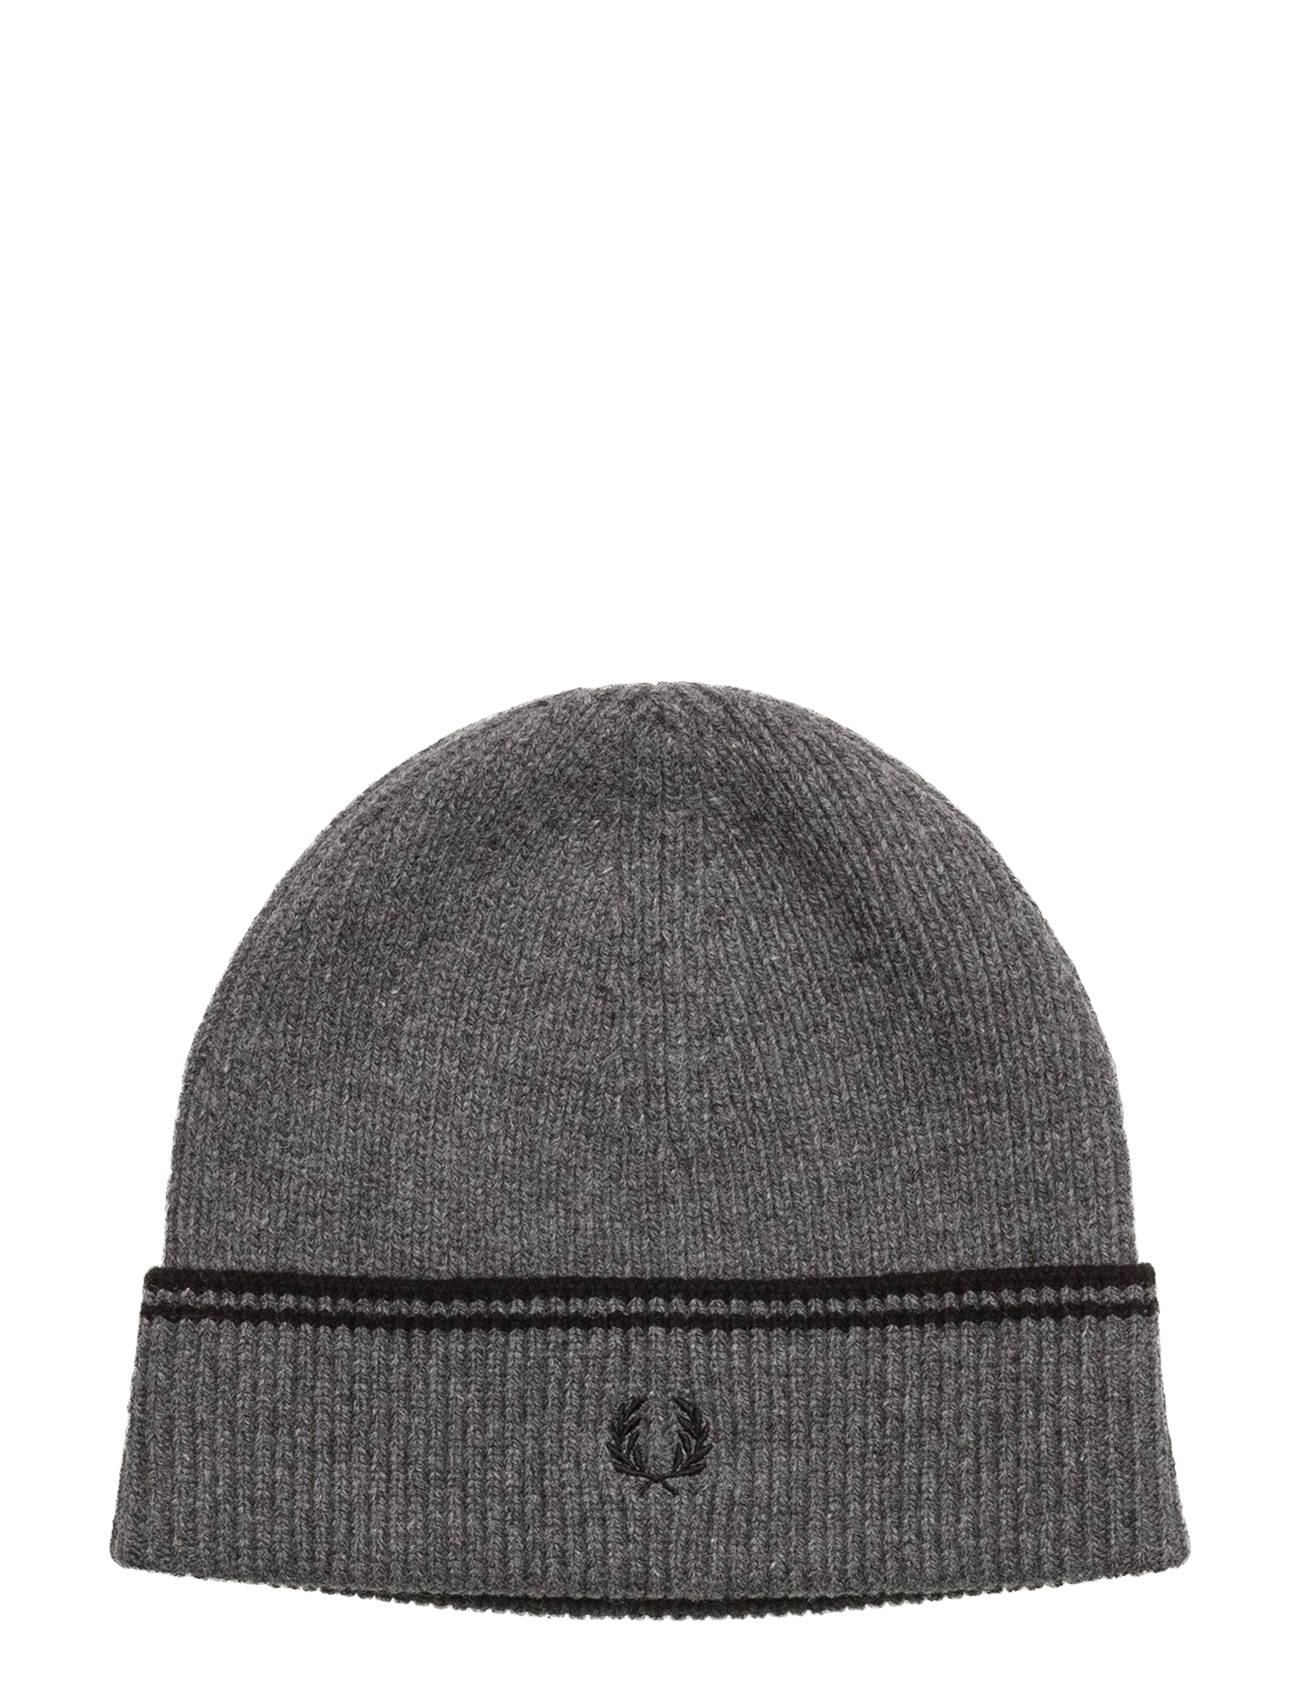 Fred Perry Lambswool Beanie